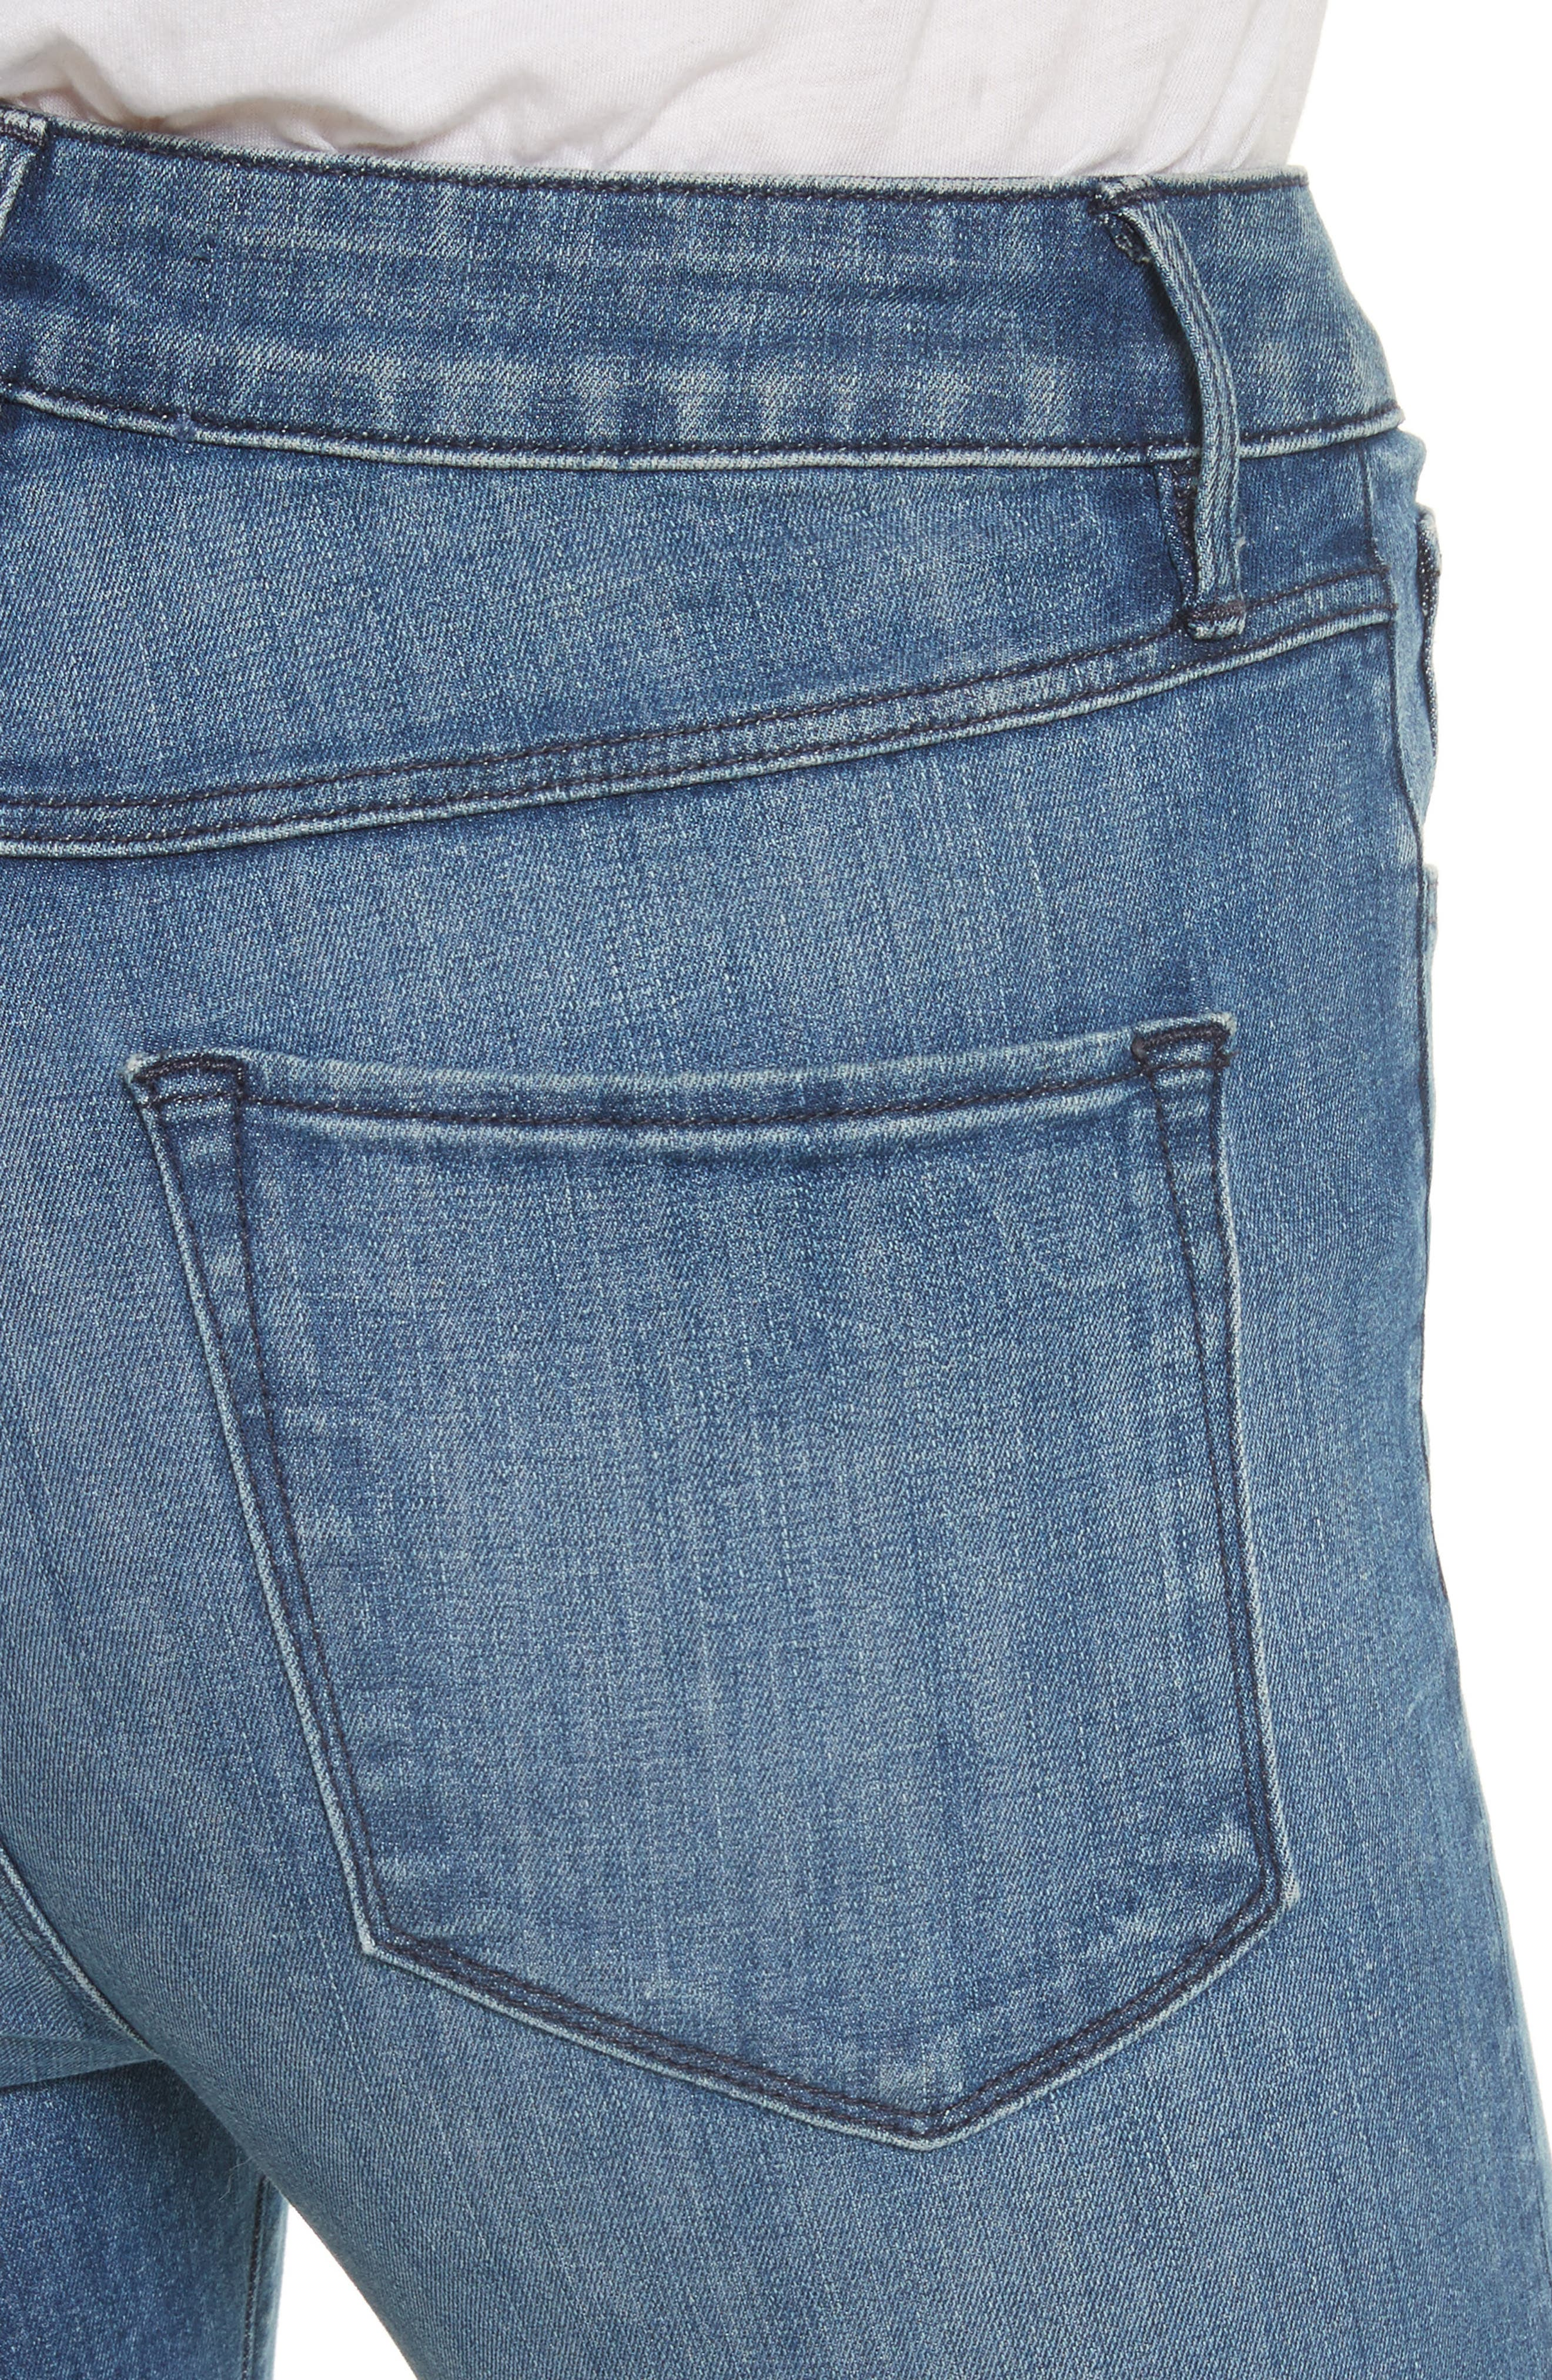 W3 Crop Skinny Jeans,                             Alternate thumbnail 4, color,                             428